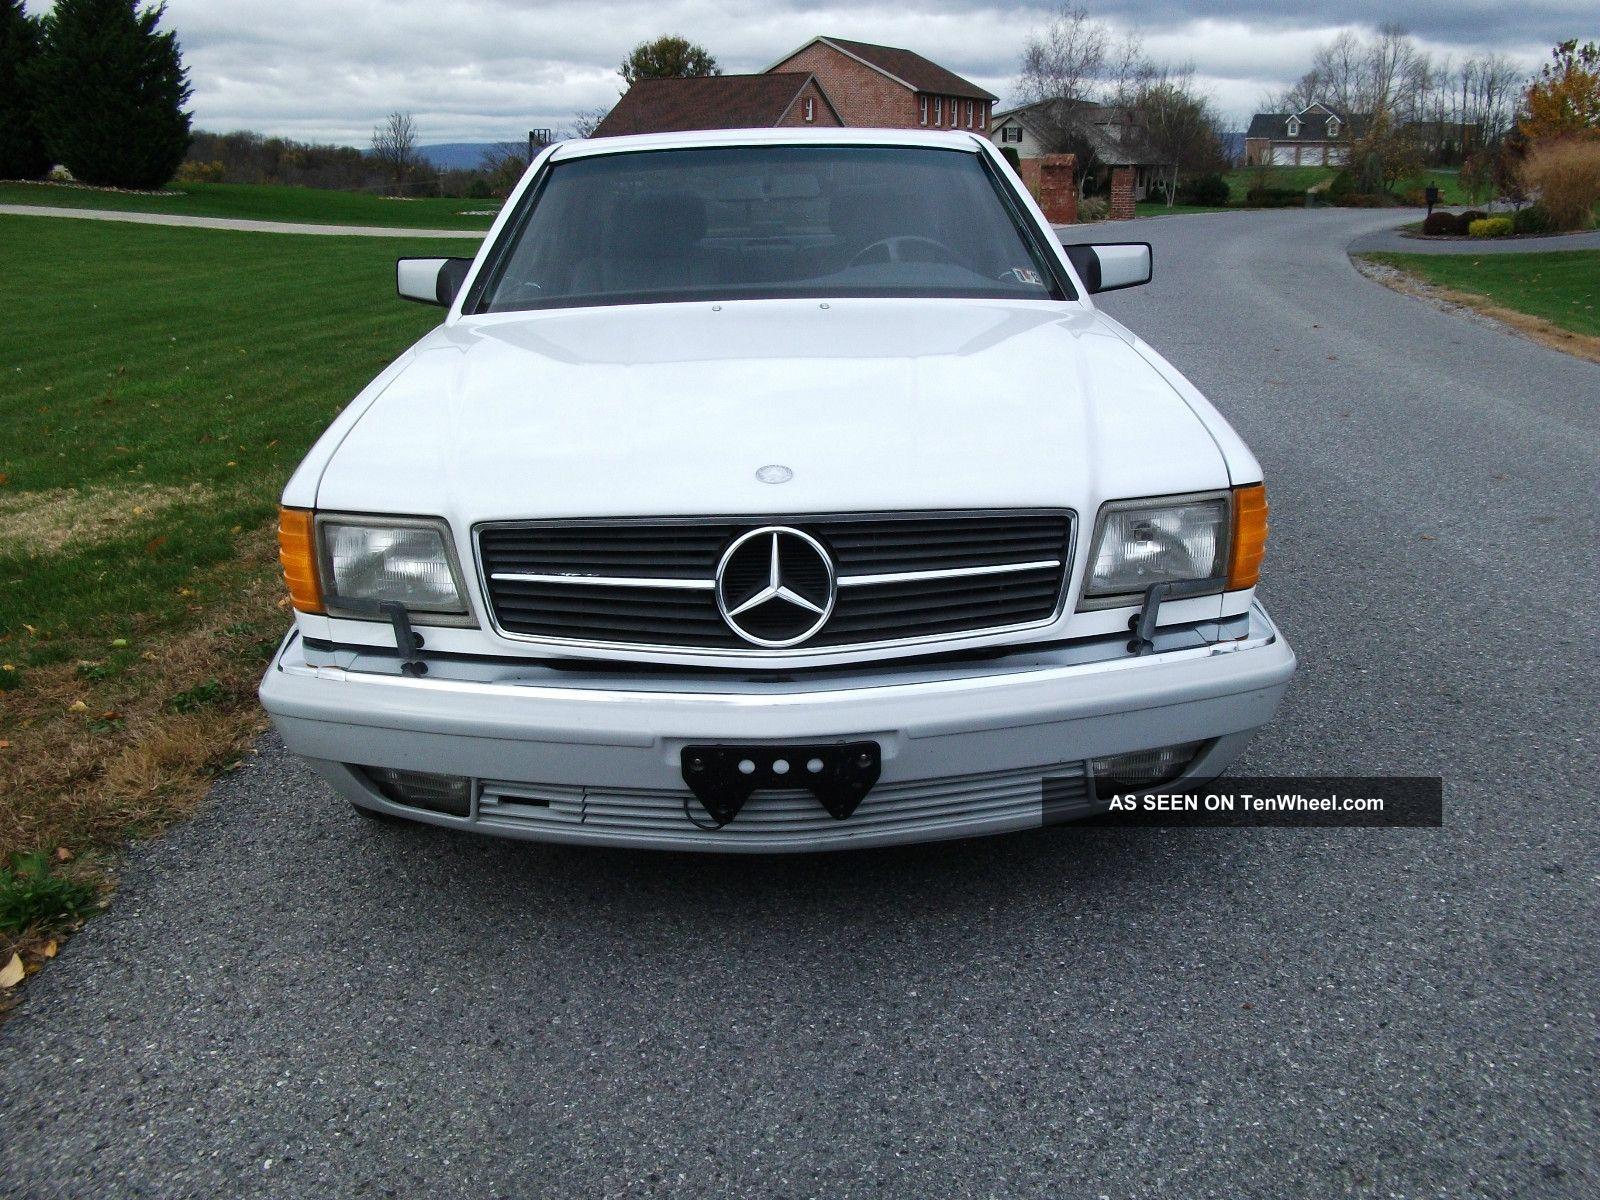 1991 mercedes benz 560 sec classic coupe 2 door 5 6l for 1991 mercedes benz